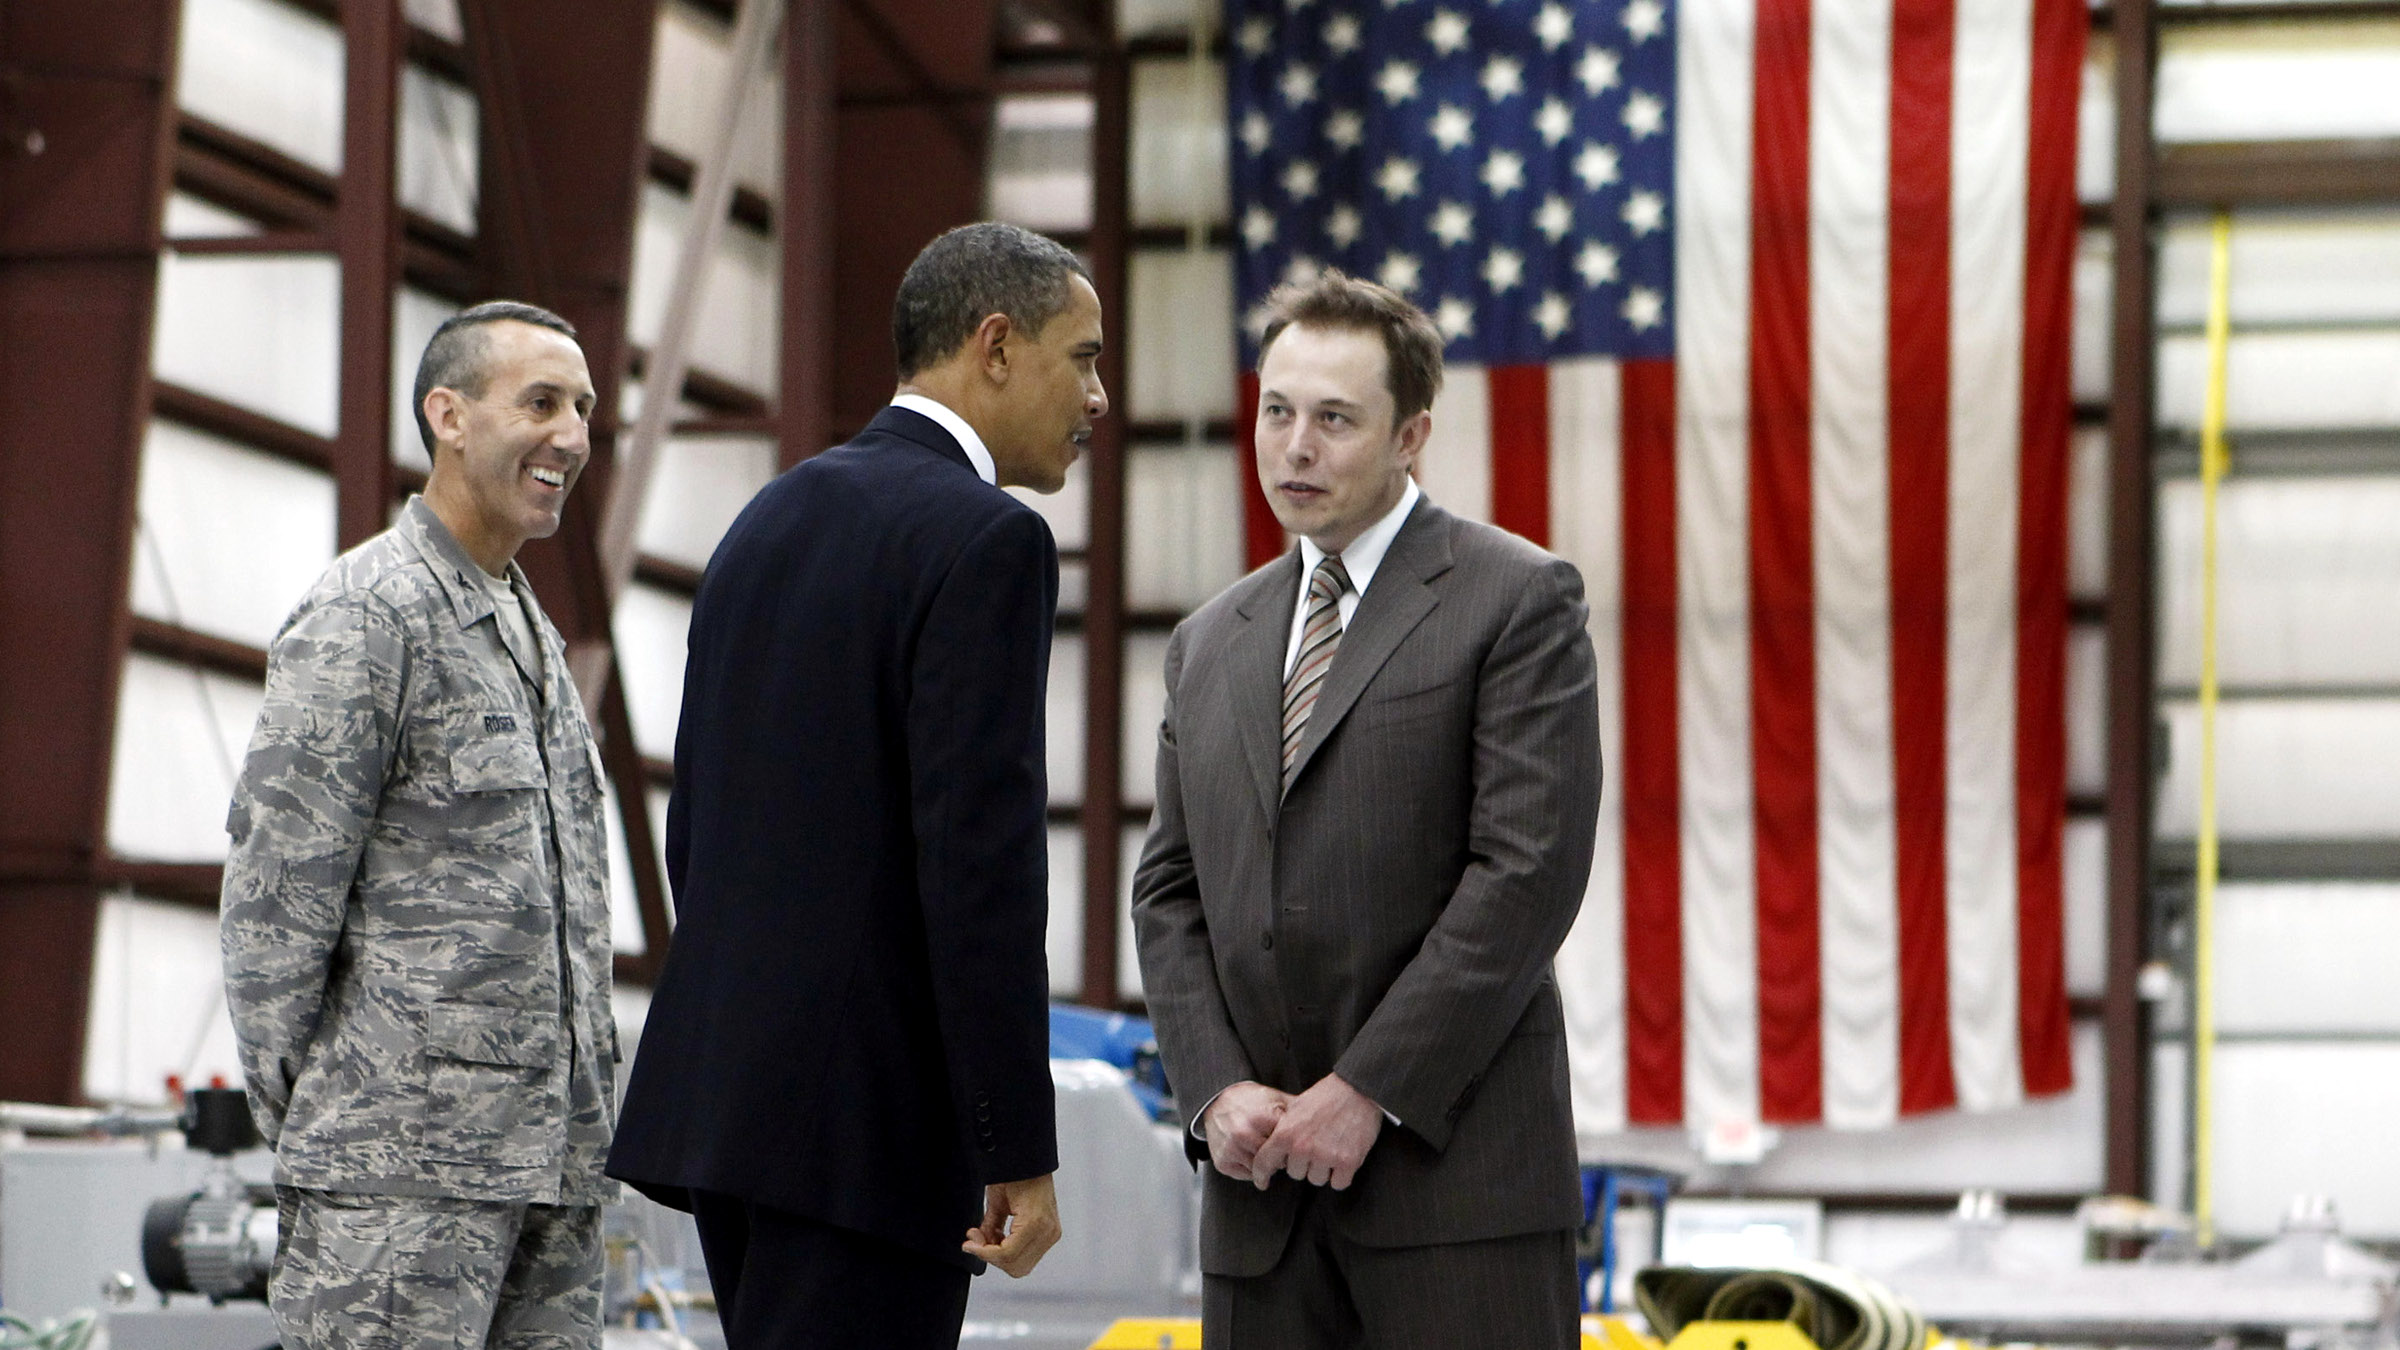 U.S. President Barack Obama (C) and Head of SpaceX Elon Musk (R) tour Cape Canaveral Air Force Station in Cape Canaveral, Florida, April 15, 2010.